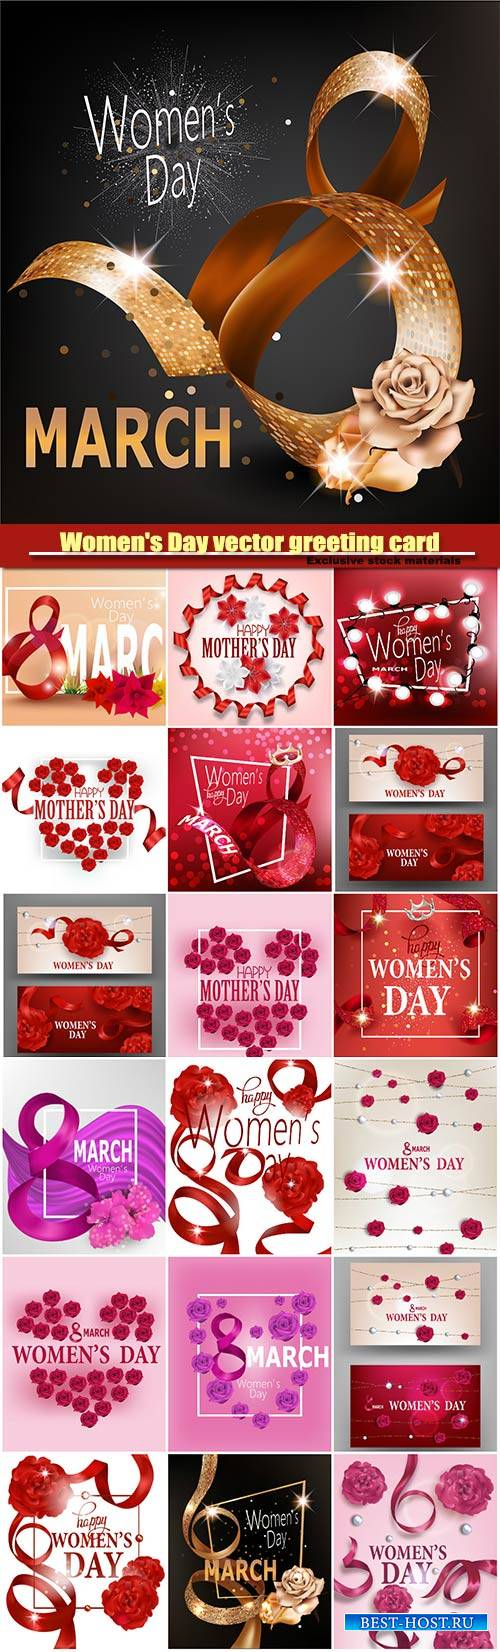 Women's Day vector greeting card with curly red ribbons and red flowers